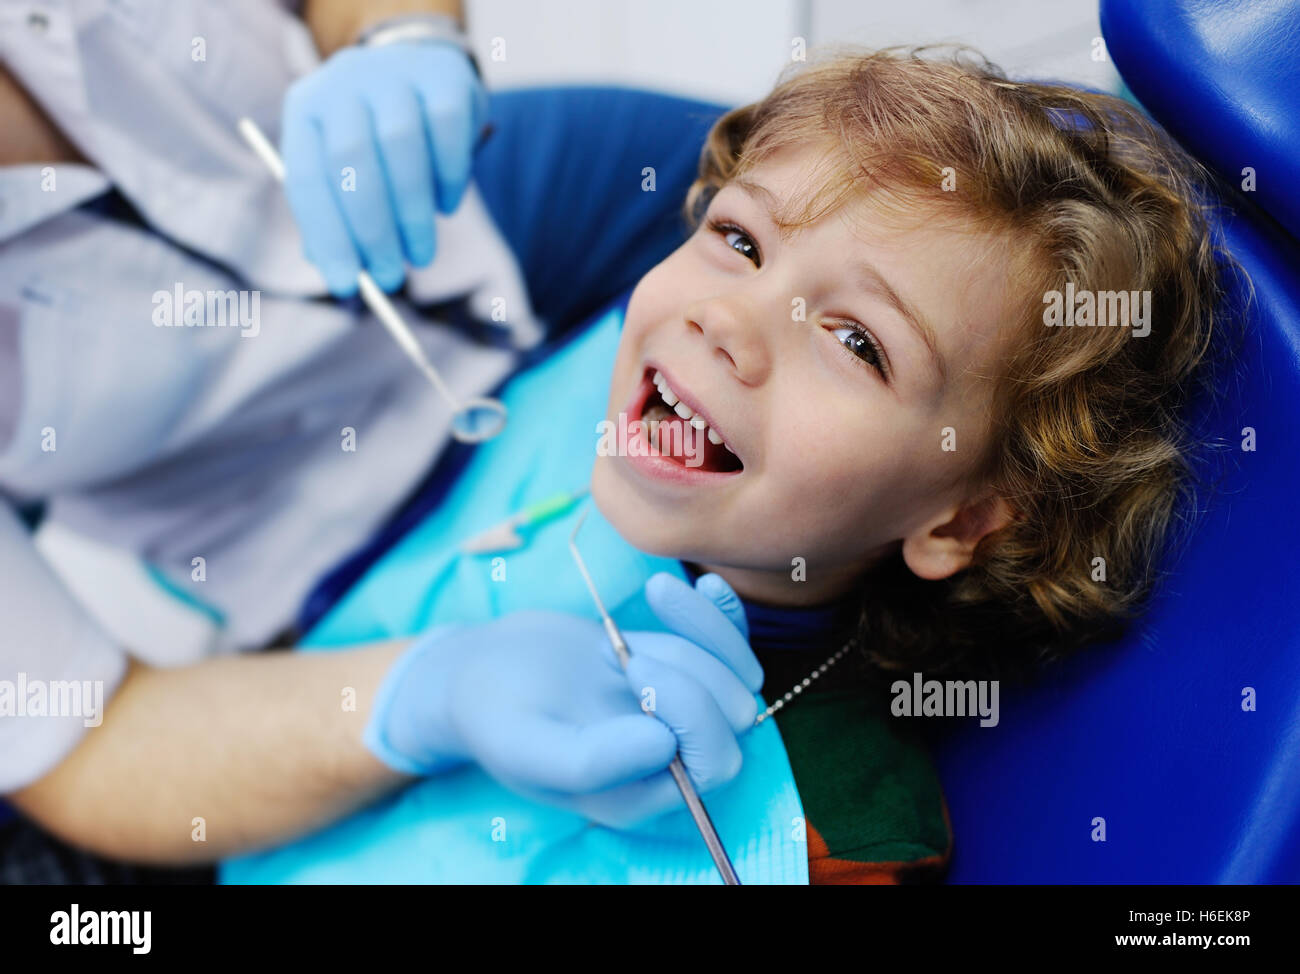 child with curly hair at the dentist - Stock Image